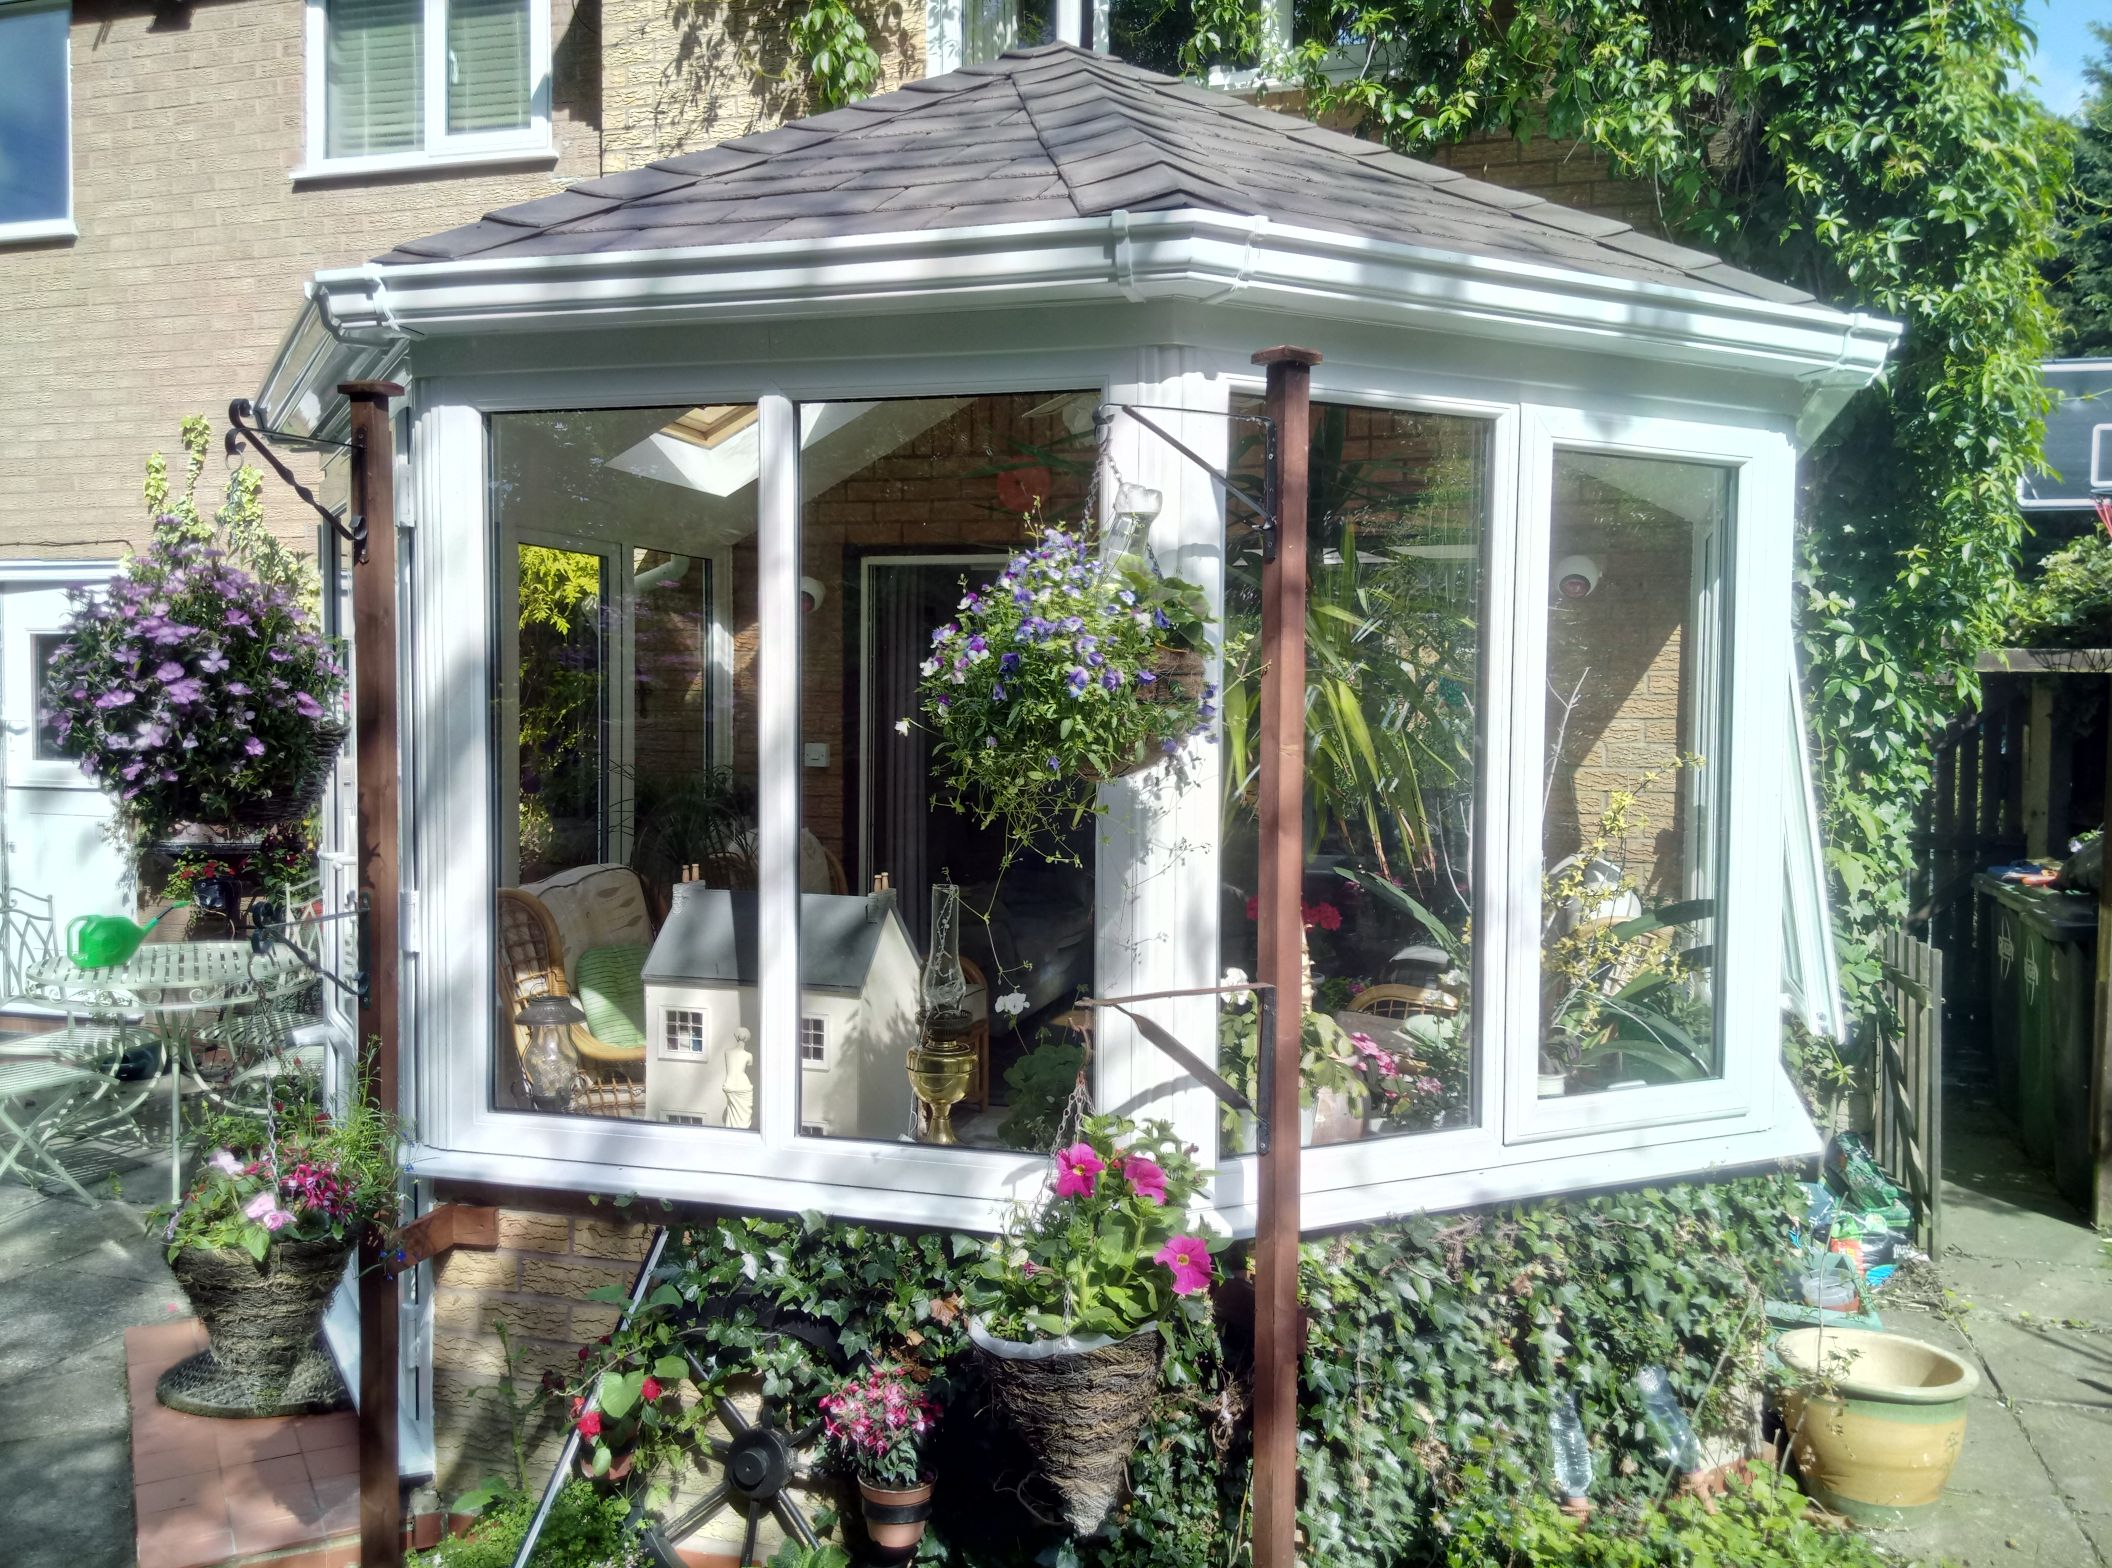 replacement conservatory Roof warwickshire